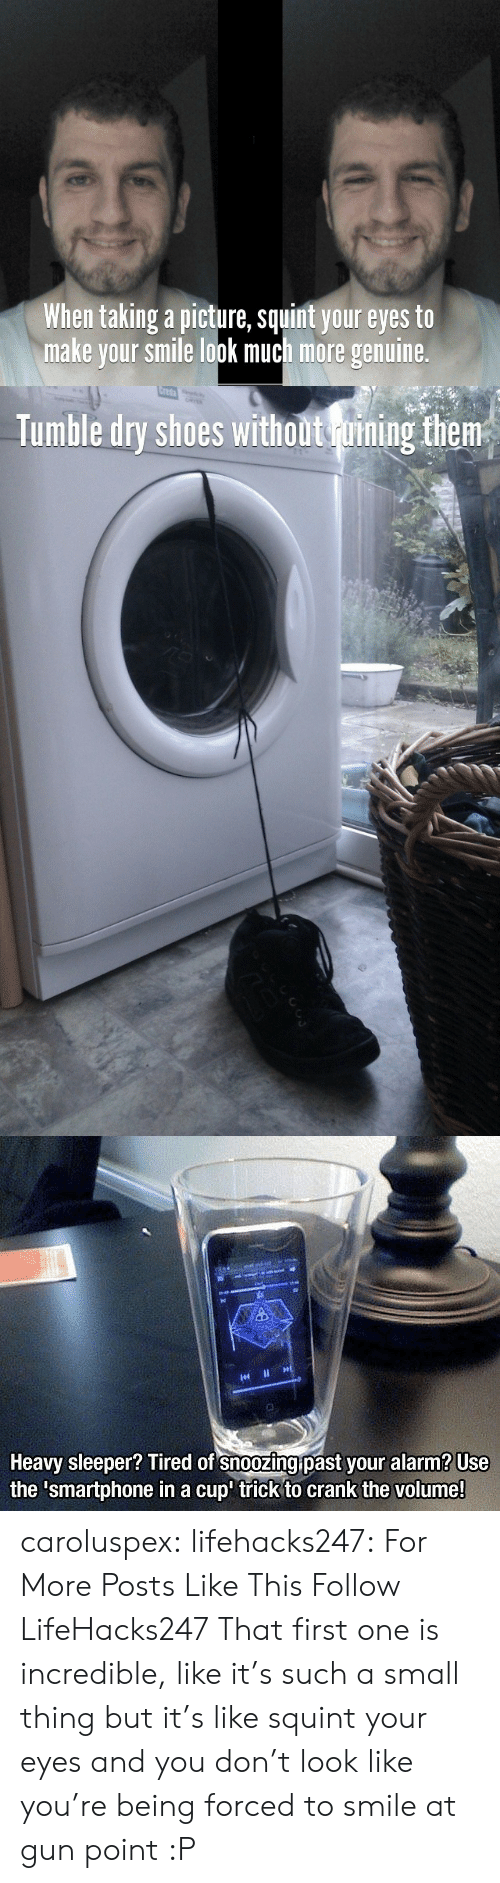 Gif, Shoes, and Tumblr: When taking a picture, squint your eyes to  make your smile look much more genuine.   Creta  pc  Tumble dry shoes without uining them   Heavy sleeper? Tired of snoozing past your alarm? Use  the 'smartphone in a cup' trick to crank the volume! caroluspex:  lifehacks247:    For More Posts Like This Follow LifeHacks247     That first one is incredible, like it's such a small thing but it's like squint your eyes and you don't look like you're being forced to smile at gun point :P